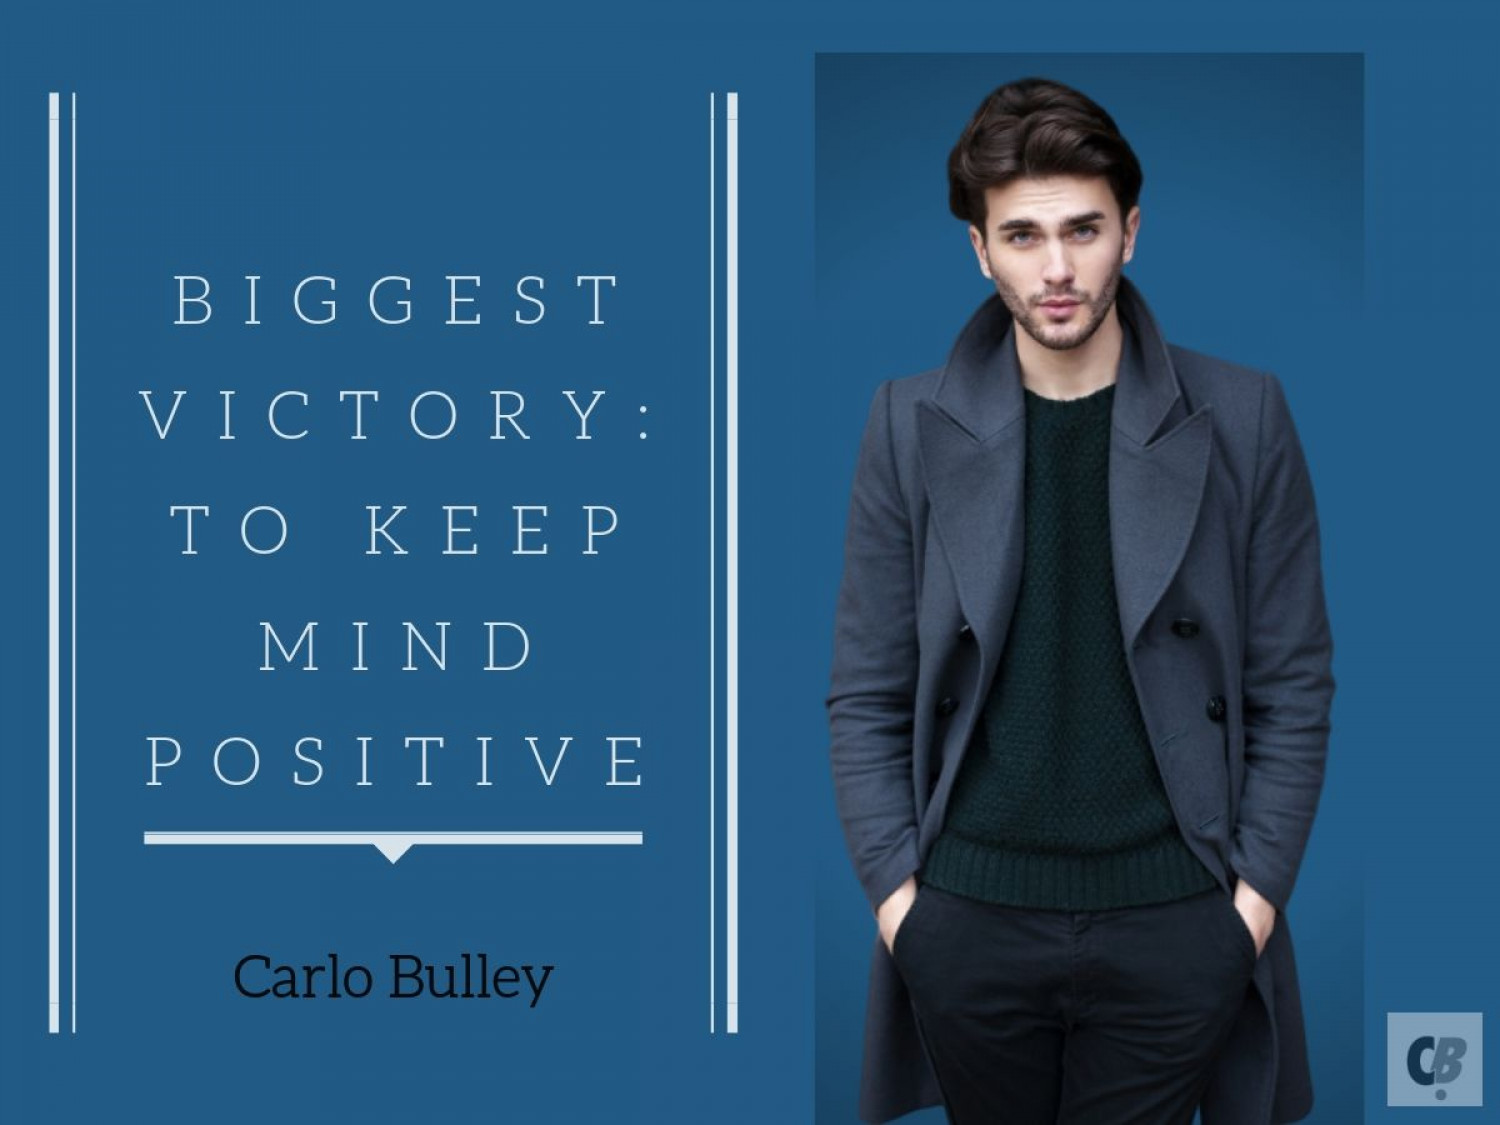 Carlo Bulley - Biggest Victory: To Keep Mind Positive Infographic